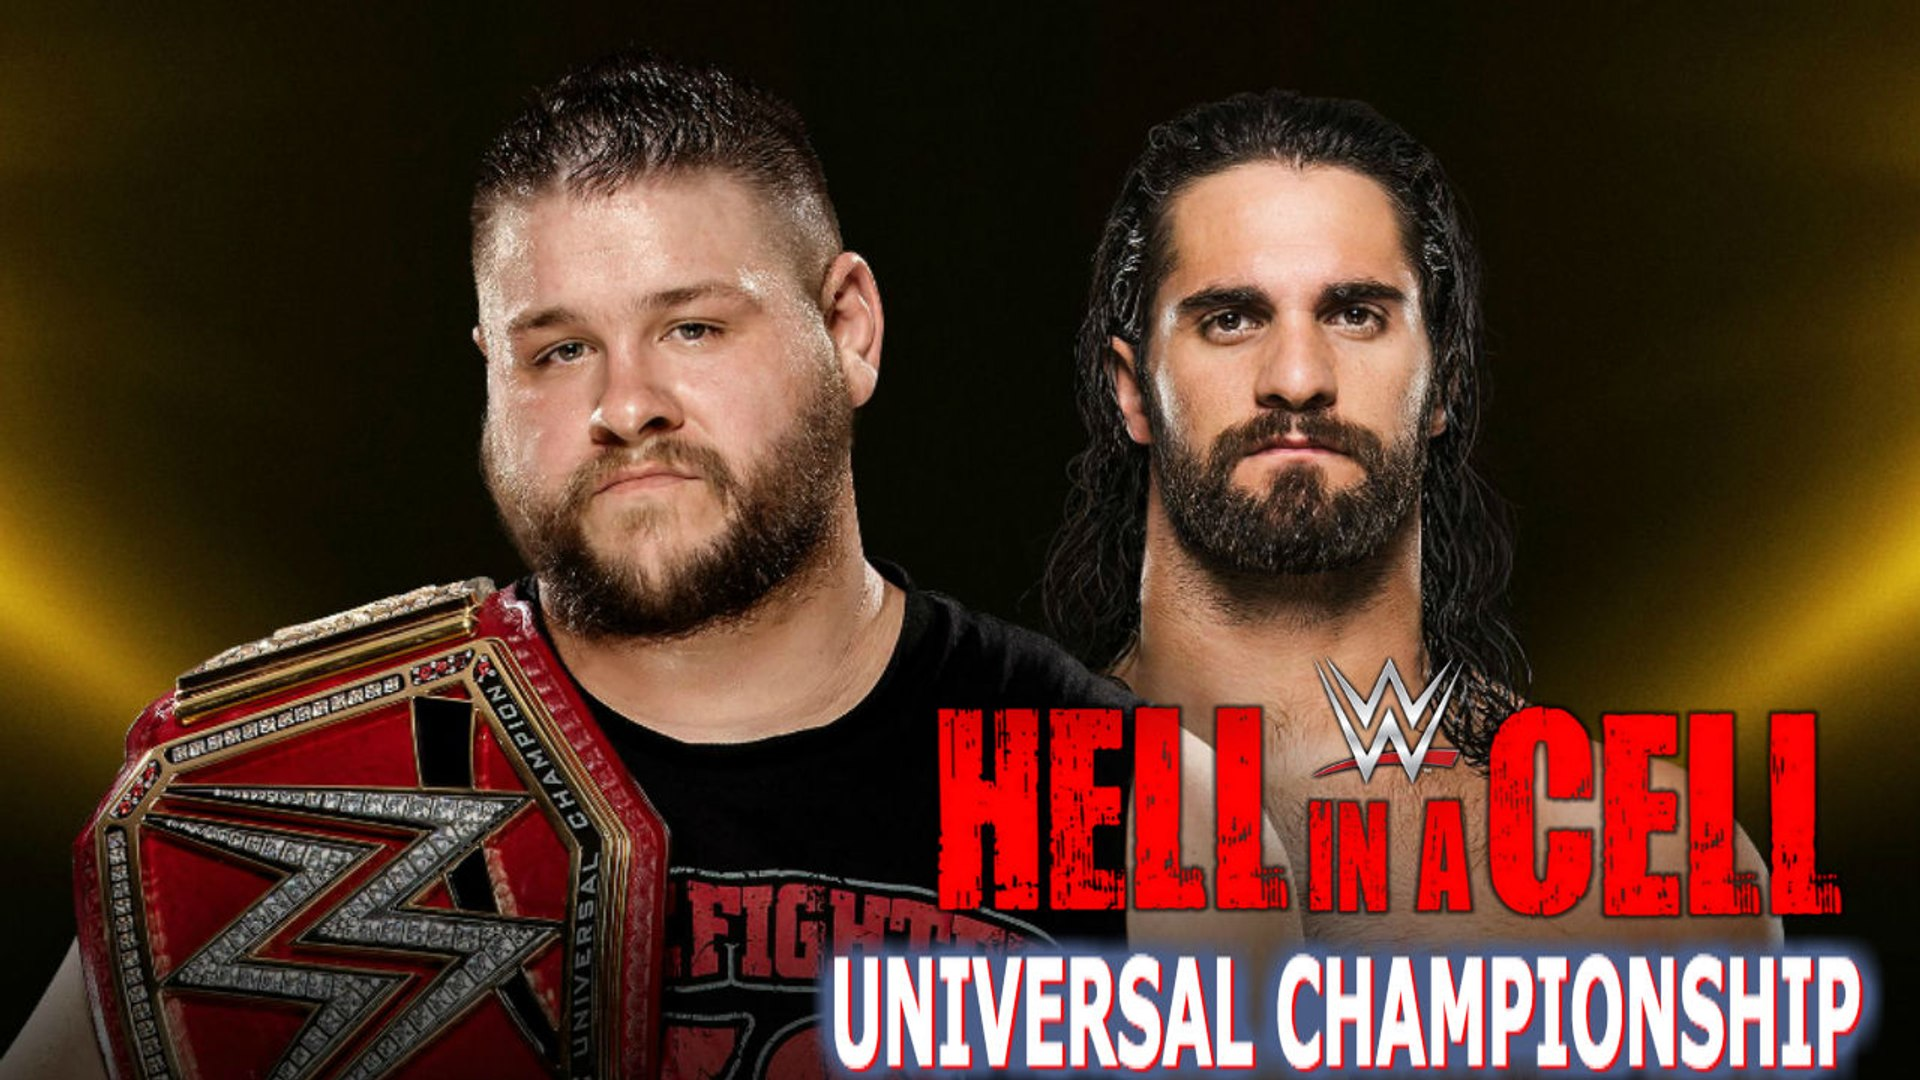 Kevin Owens (c) vs. Seth Rollins WWE 2K17 HELL IN A CELL UNIVERSAL CHAMPIONSHIP - HELL IN A CELL MAT